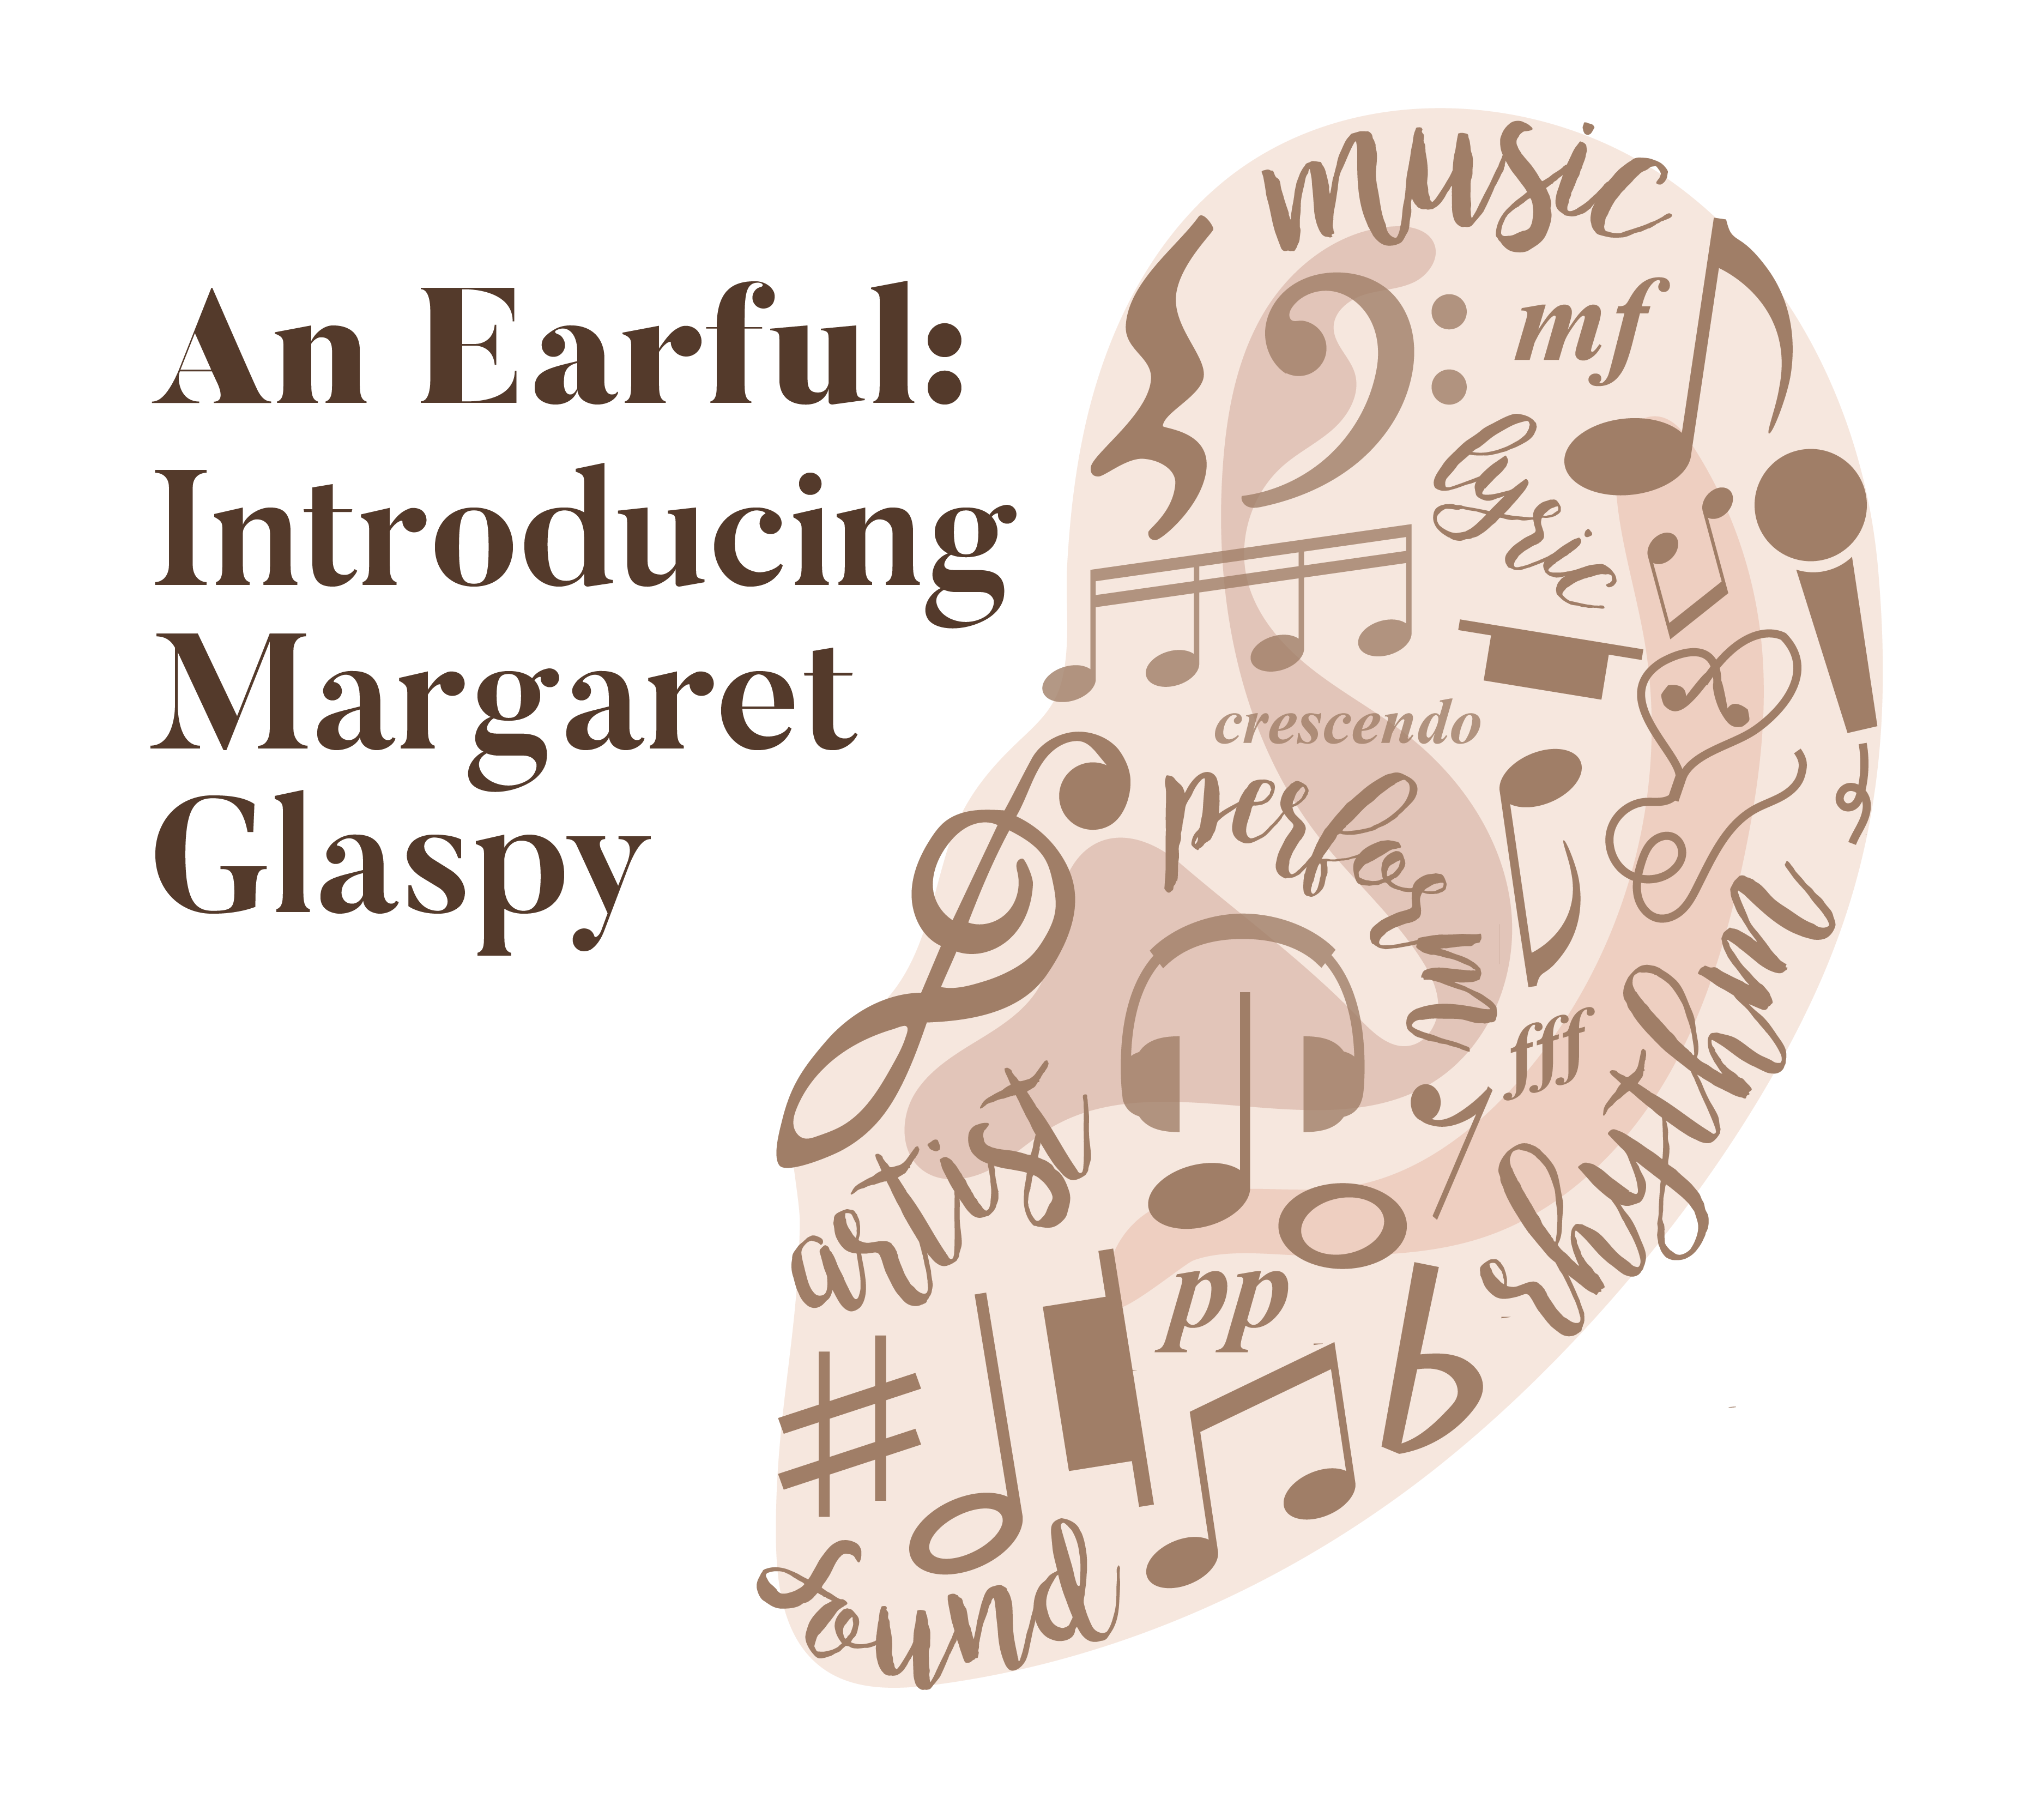 An Earful: introducing Margaret Glaspy